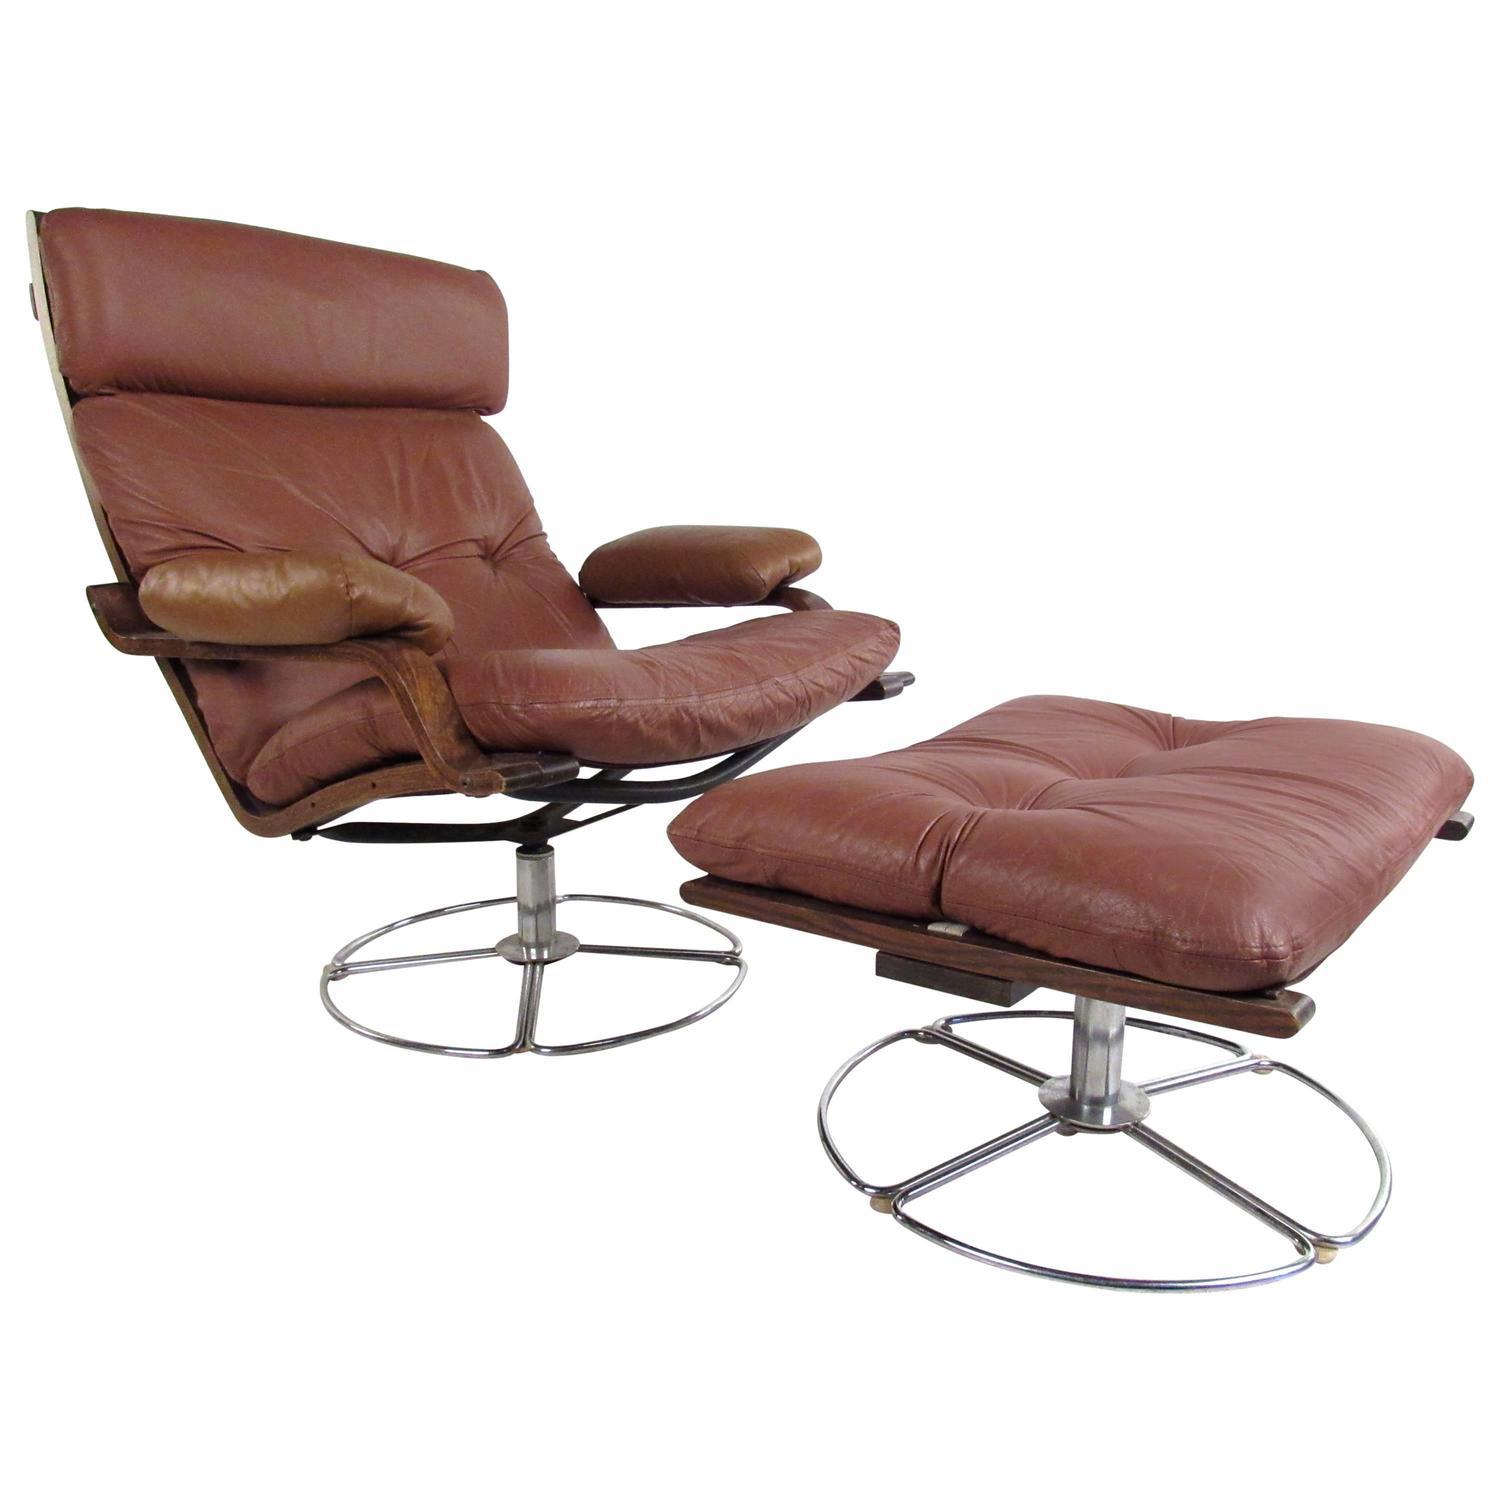 swivel club chair with ottoman folding legs vintage leather westnofa style lounge